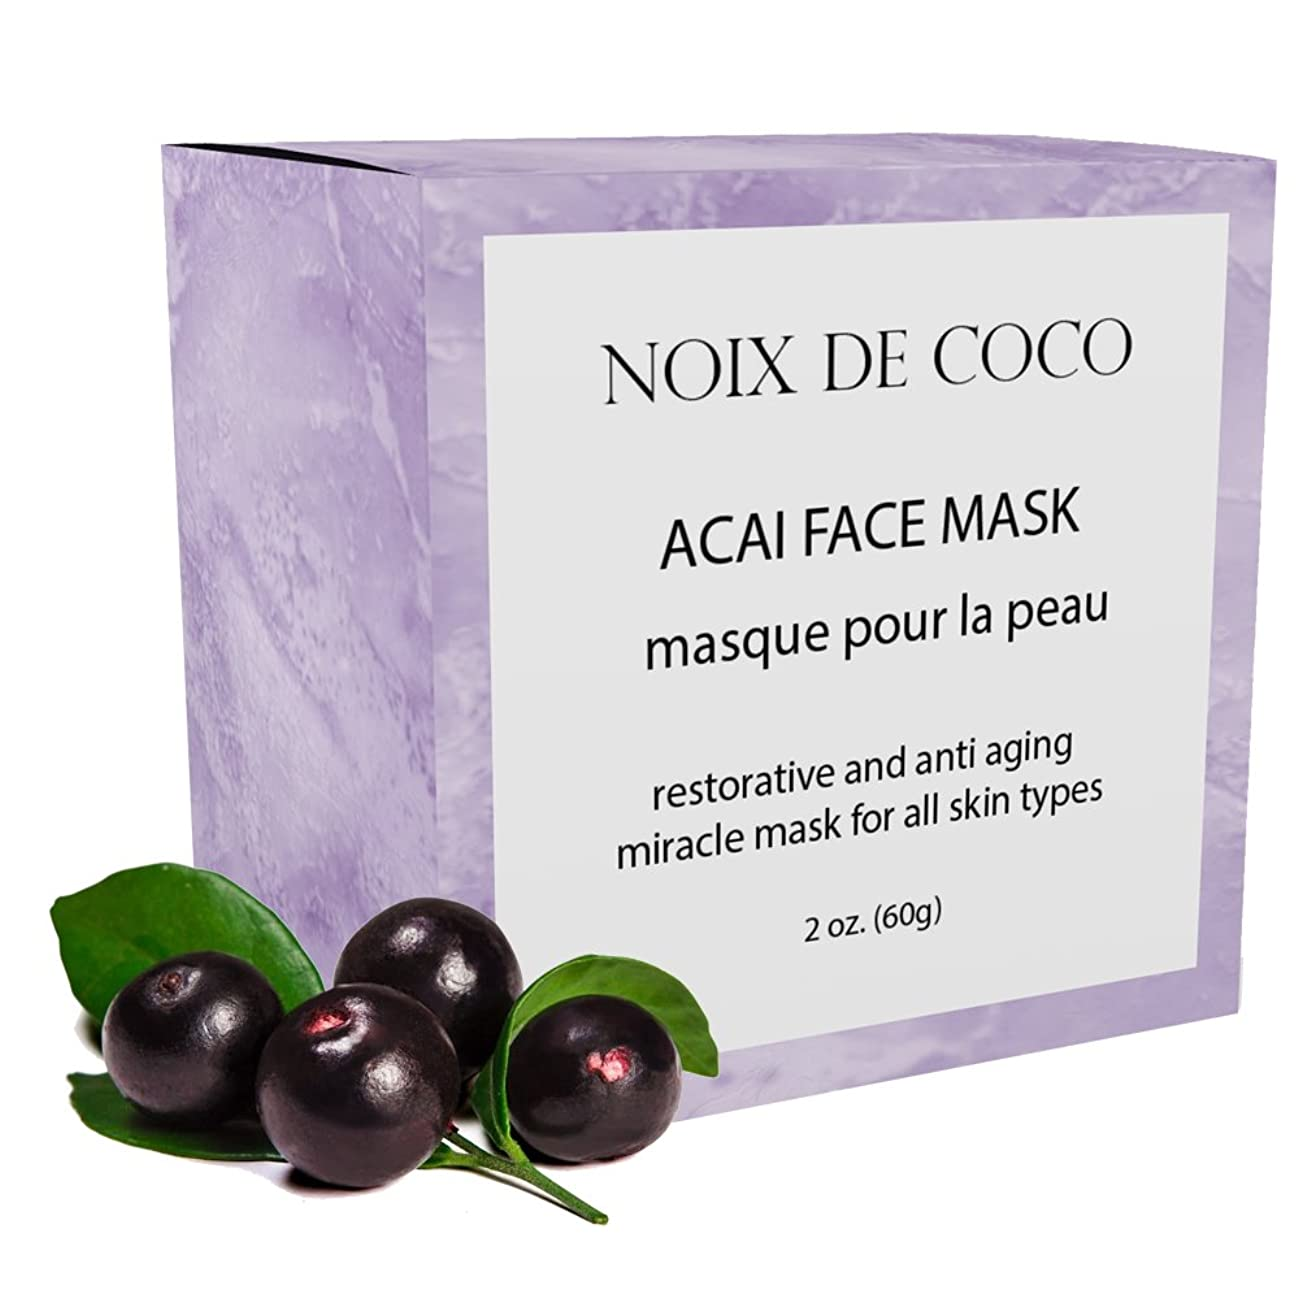 Noix de Coco Organic Superfood Face Mask in ACAI (or AVOCADO, BEET, CHARCOAL, MATCHA, TURMERIC). Reduces Pores & Acne. Tightening & Hydrating. All Natural, Vegan, Cruelty Free, Non-Toxic.